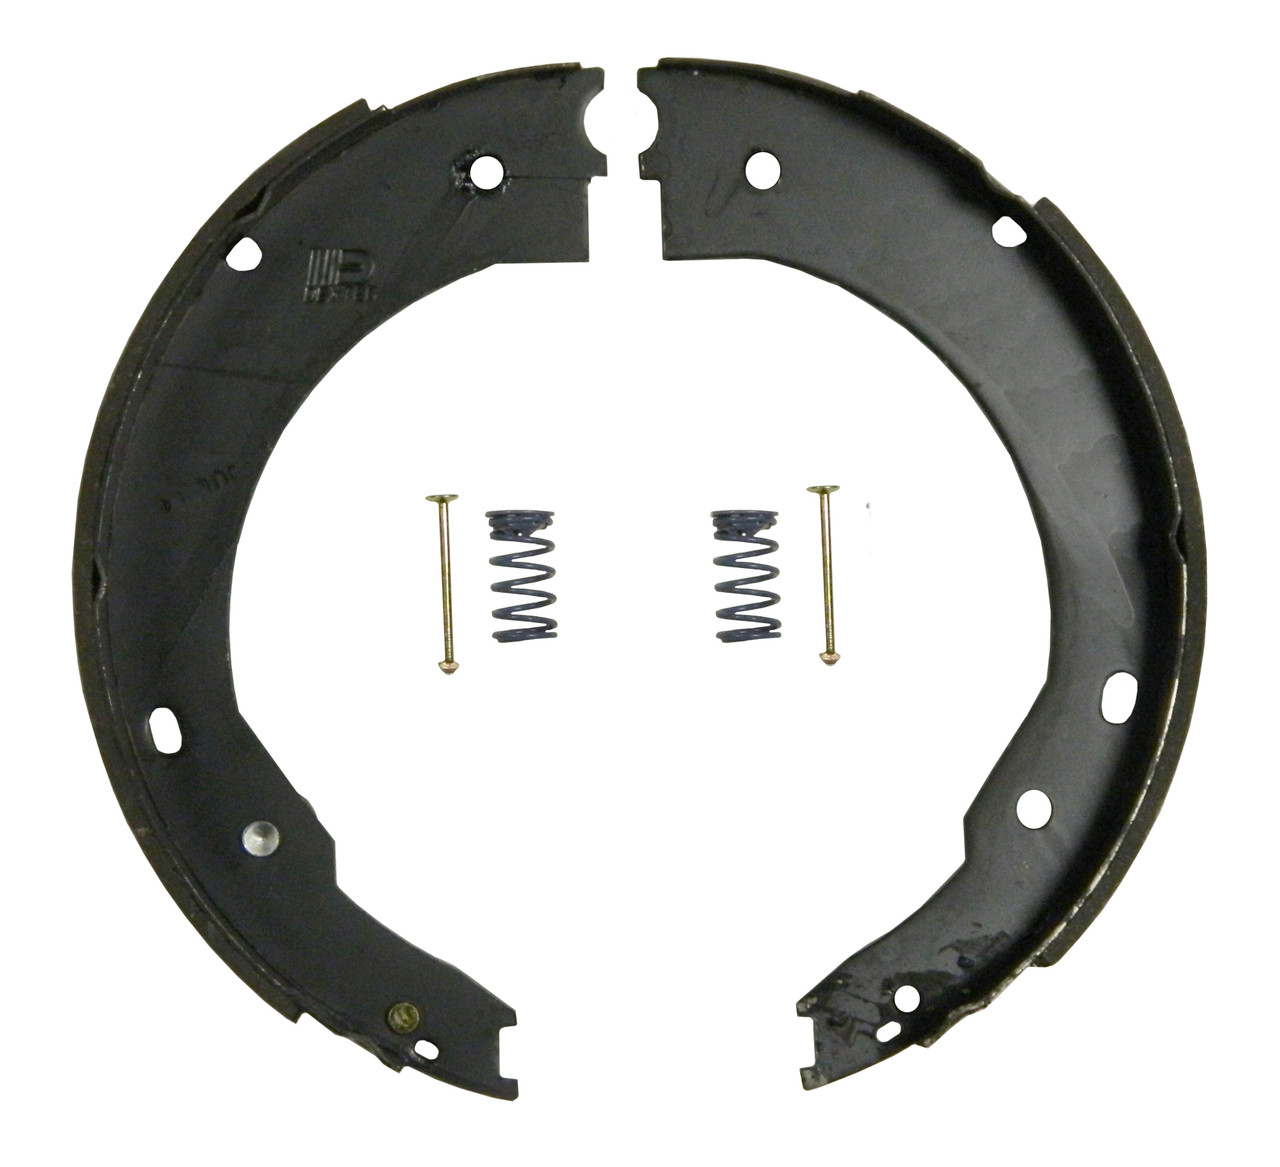 71-674 --- Shoe and Lining Kit for 6,000 lb Capacity Dexter Nev-R-Adjust Electric Brakes - RH